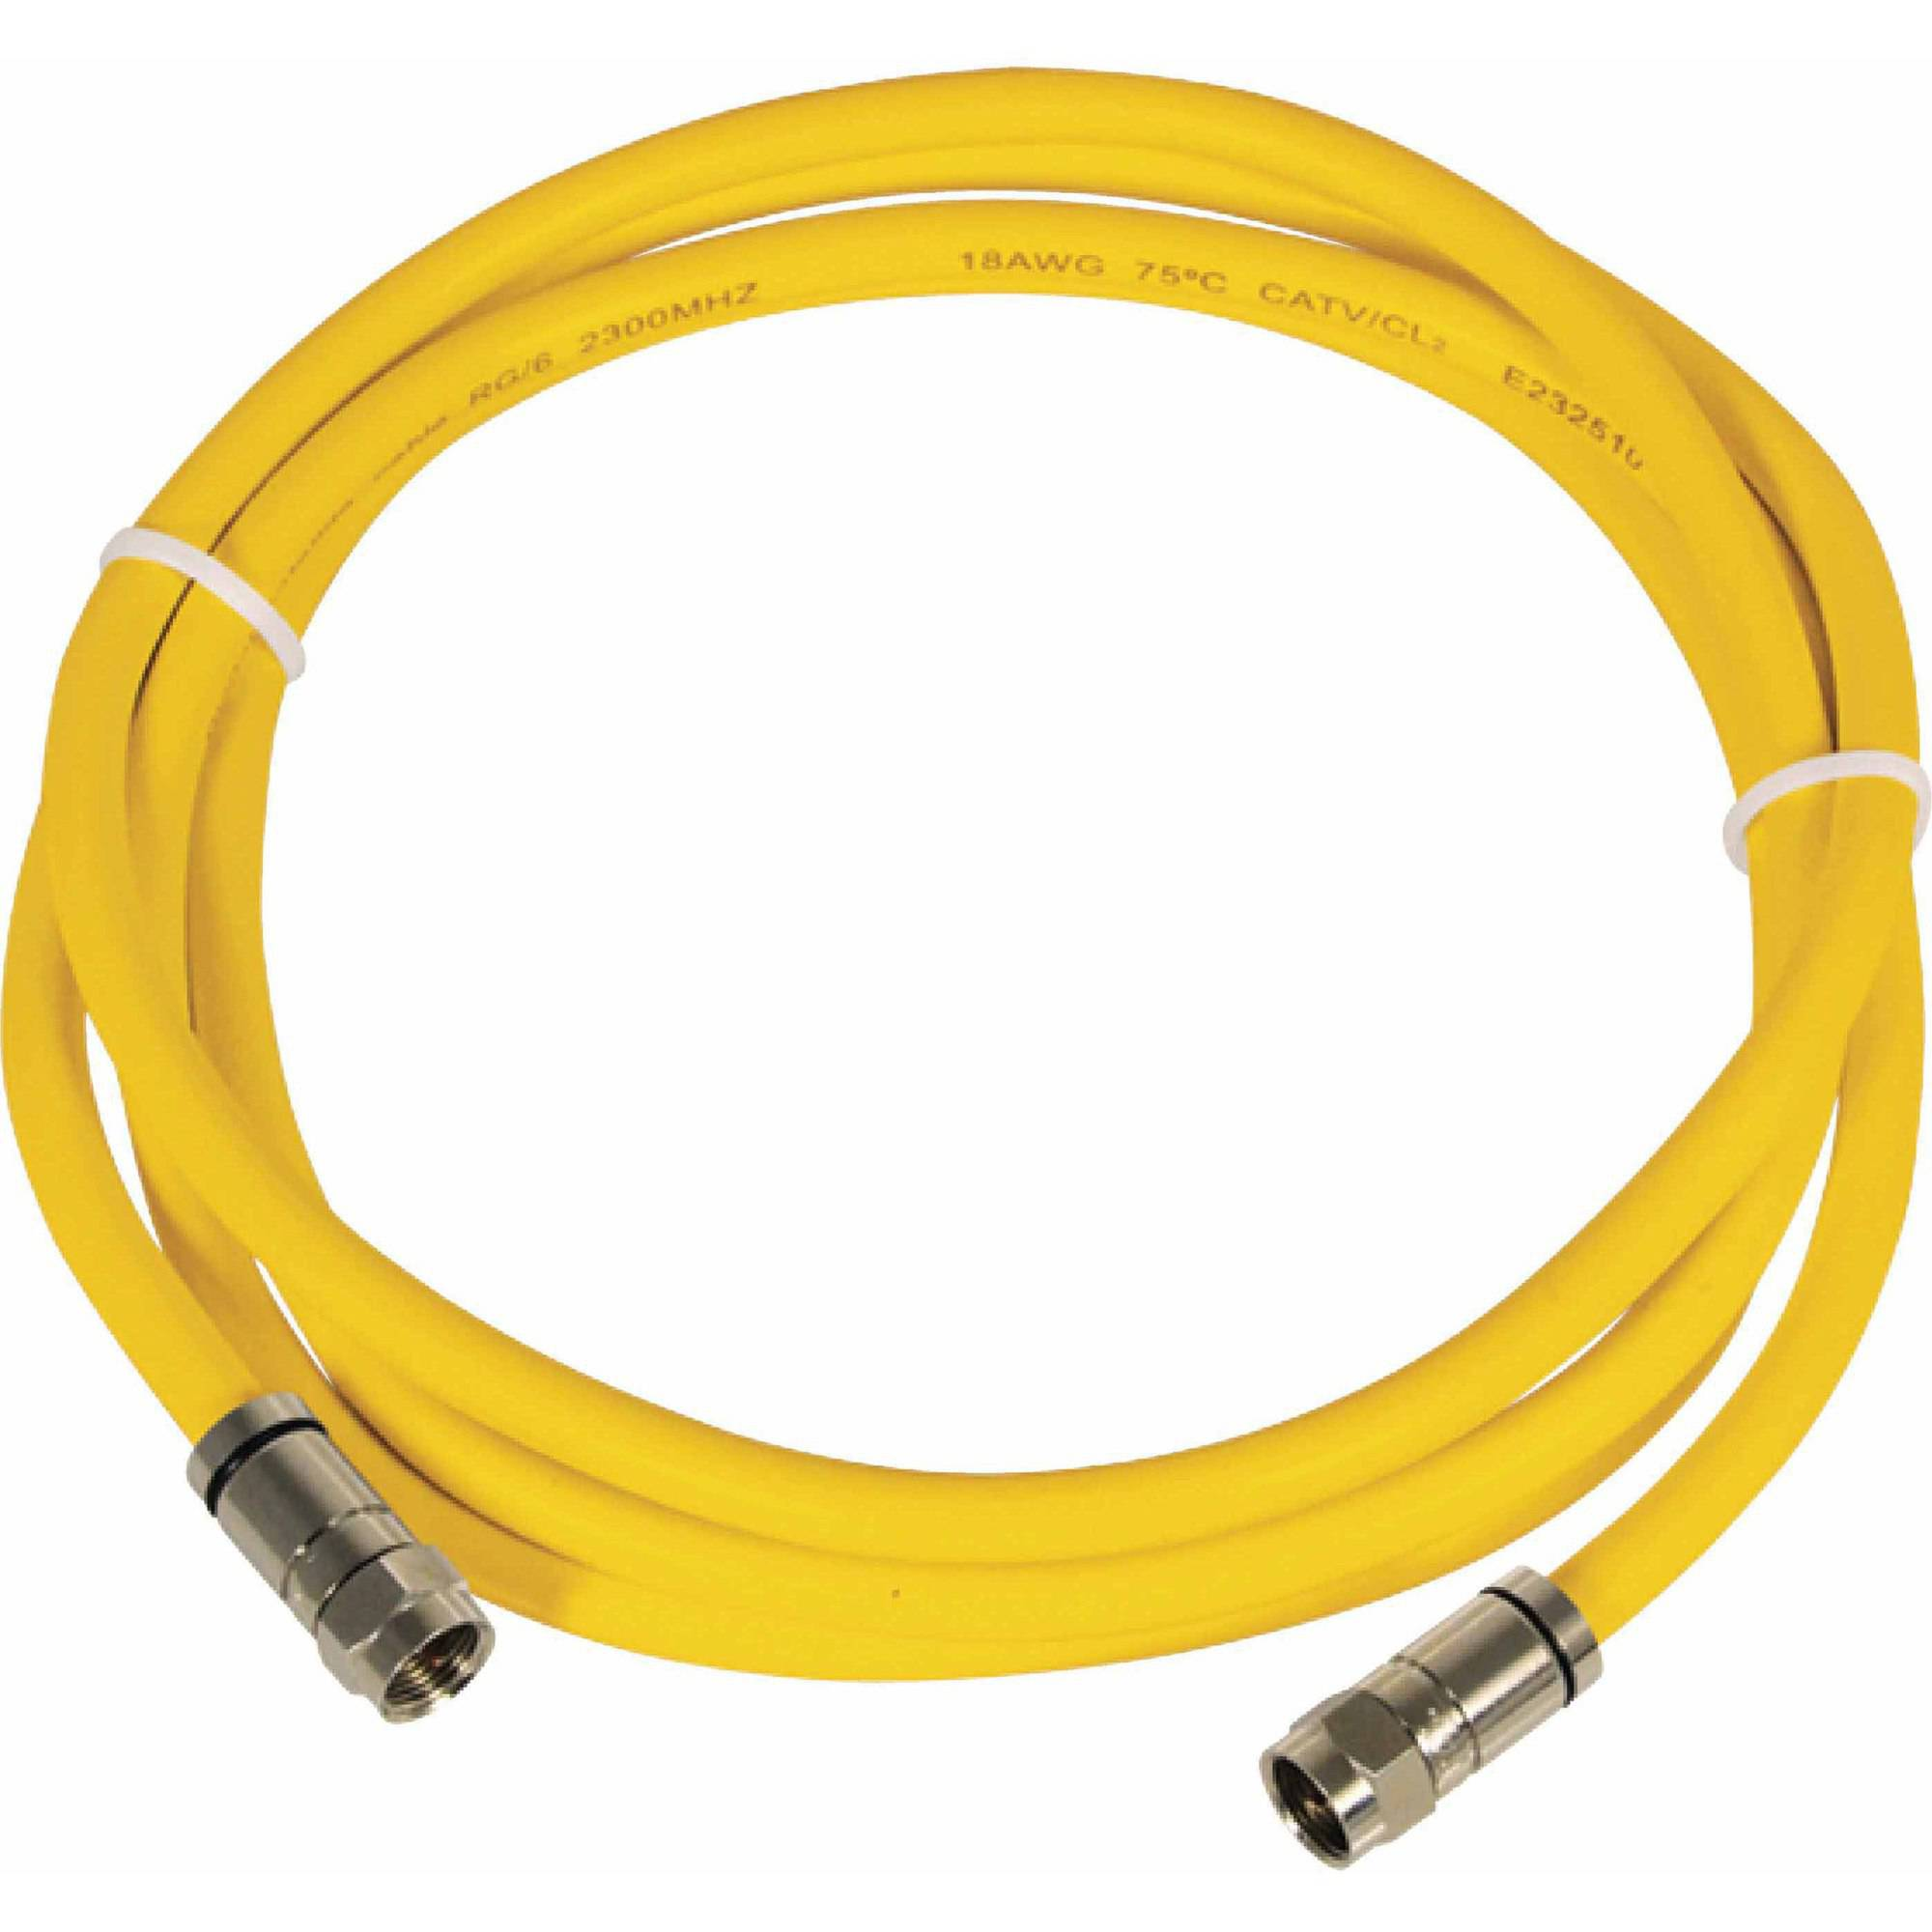 Marinco TVHD HDTV/Internet Cable 50', Yellow